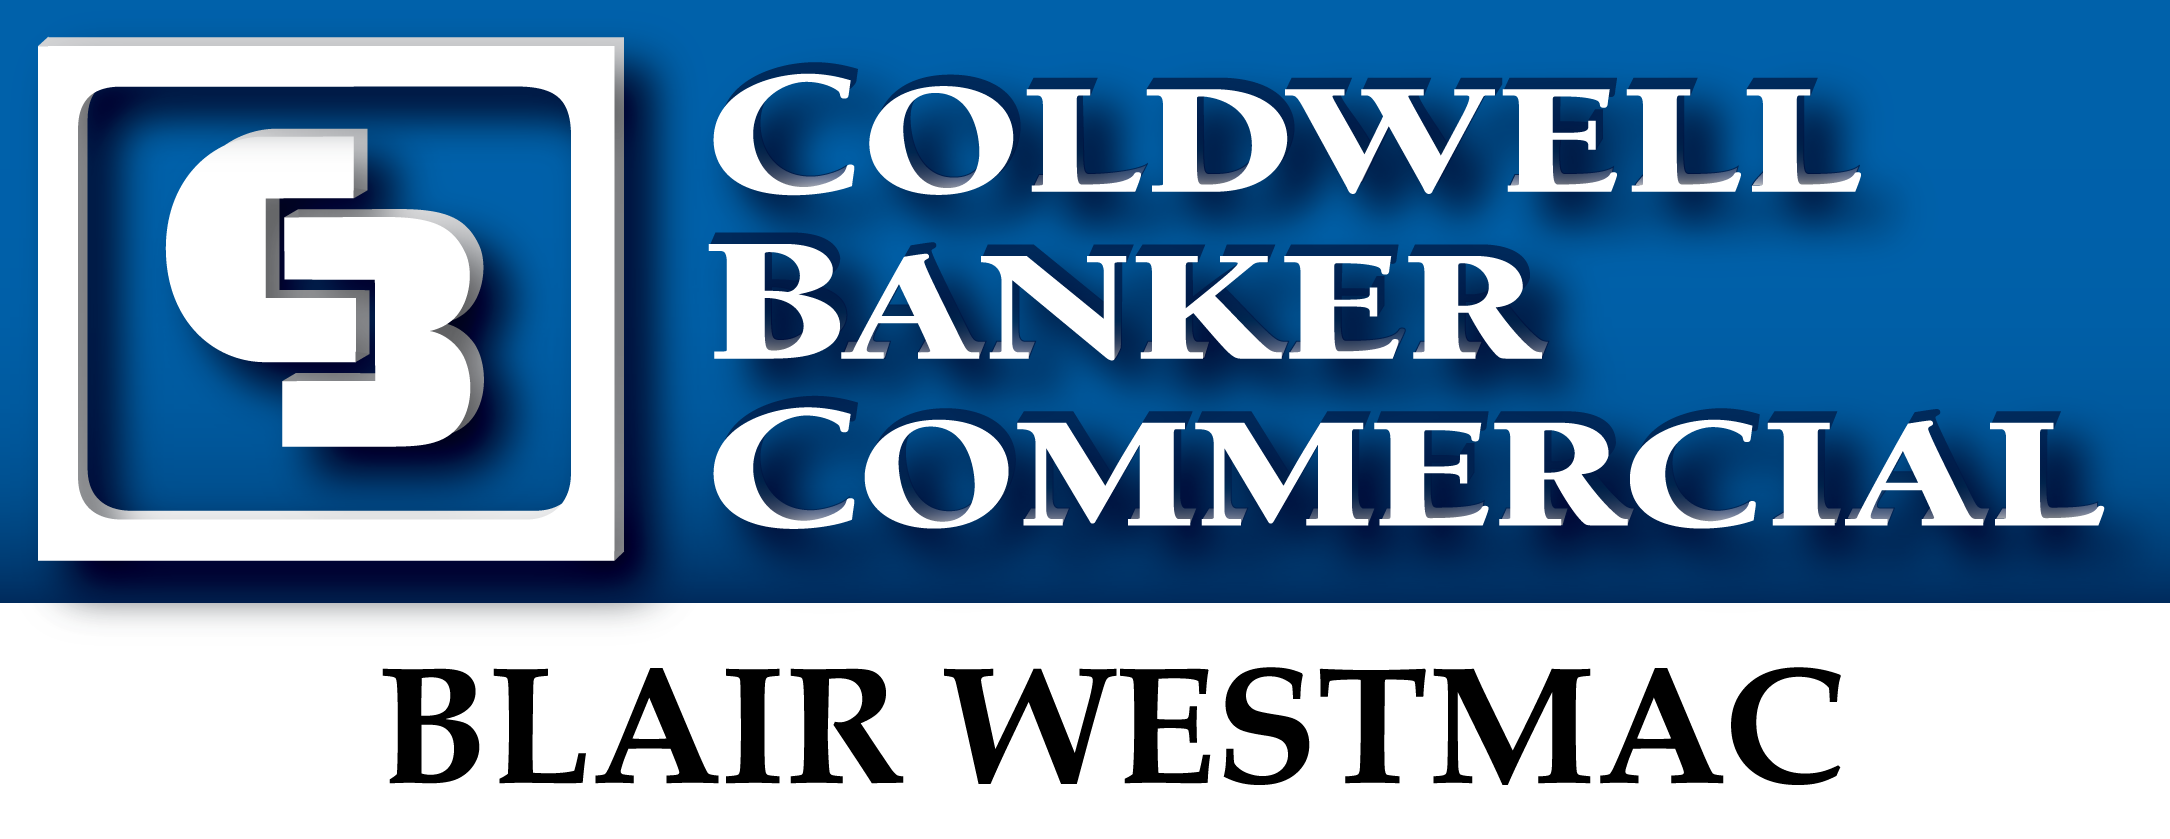 Closest to the Pin Contest - Coldwell Banker Commercial  - Logo